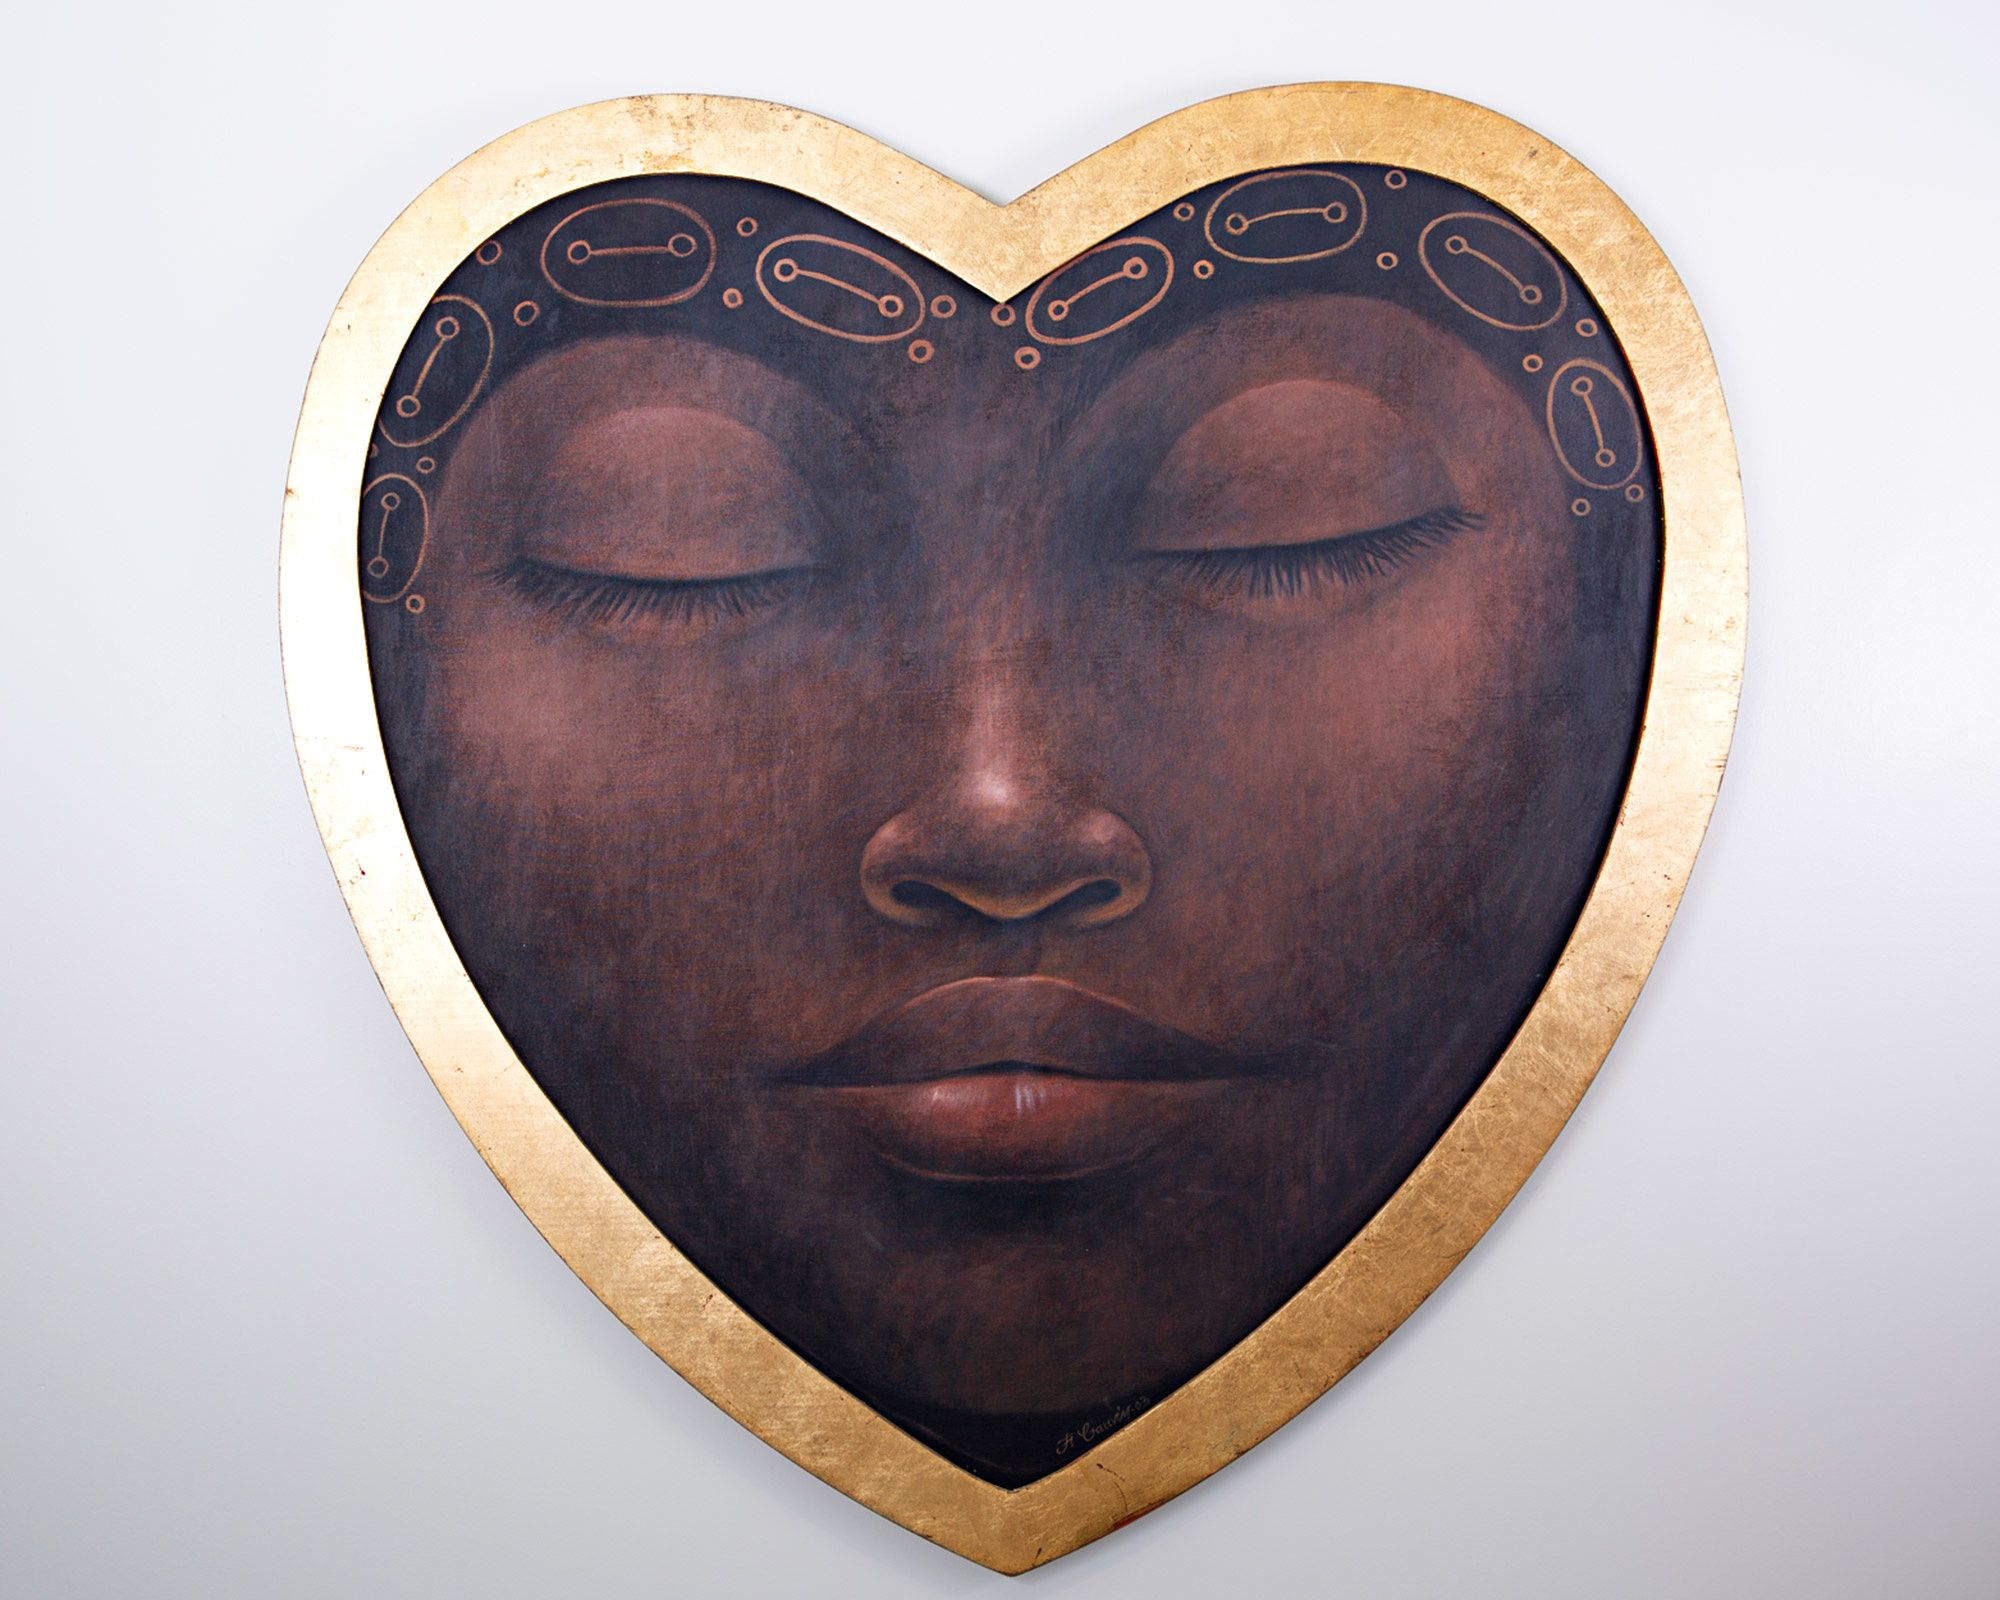 Painting of heart-shaped quasi-mask showing a woman in serene slumber.